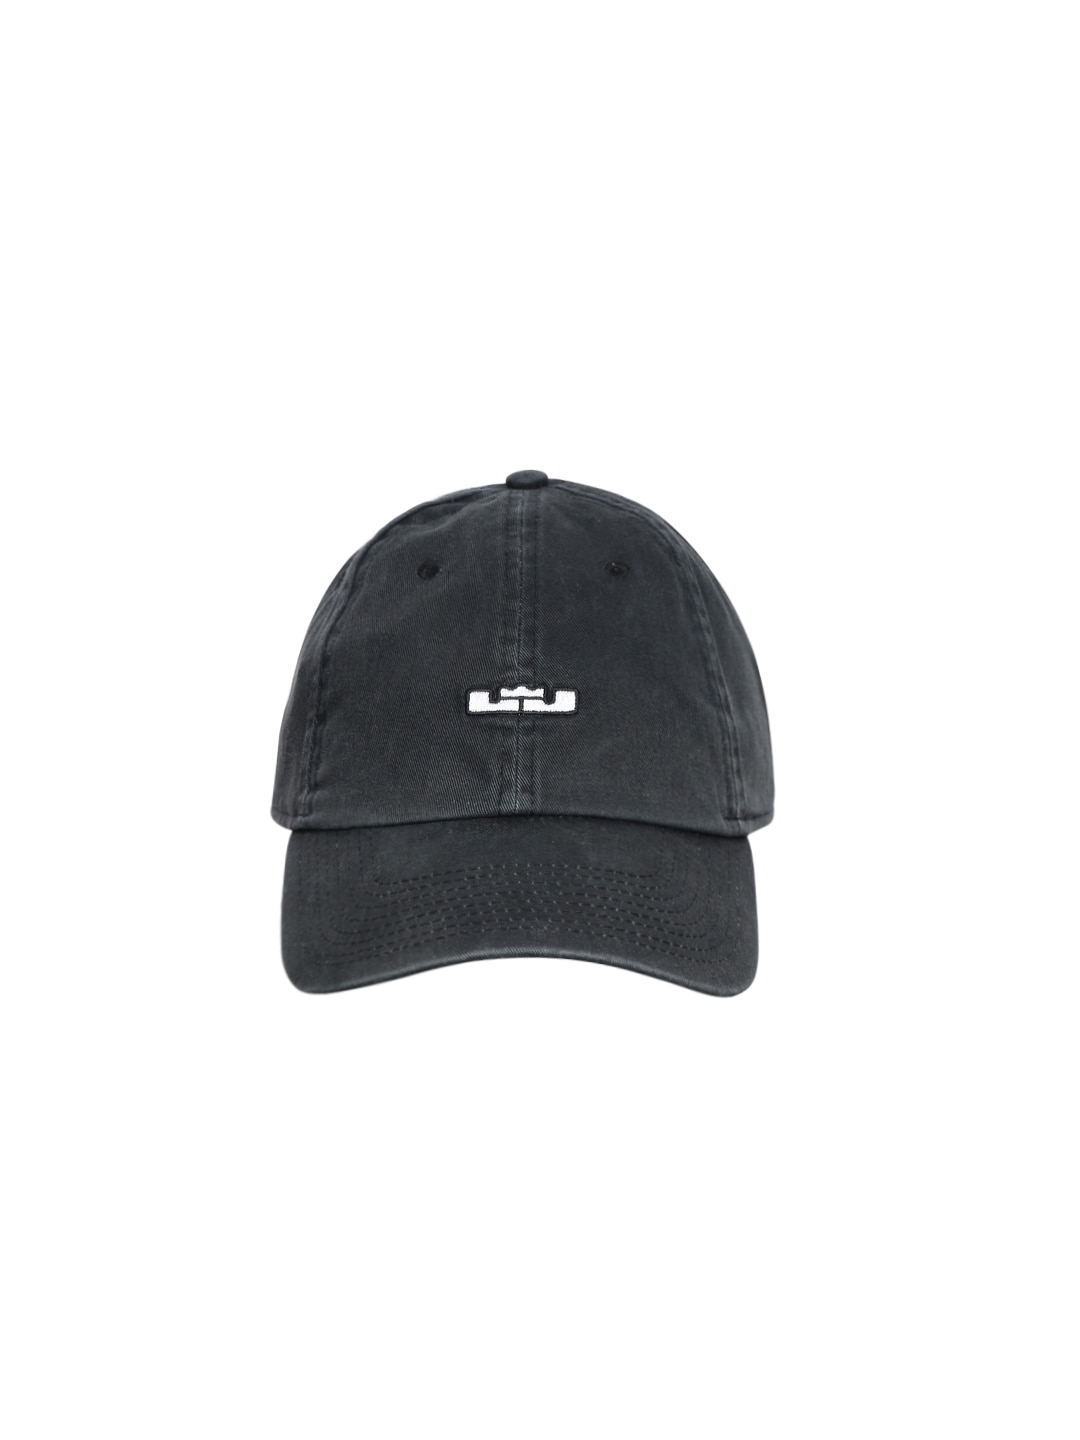 07fb47b10037 Hats   Caps For Men - Shop Mens Caps   Hats Online at best price ...